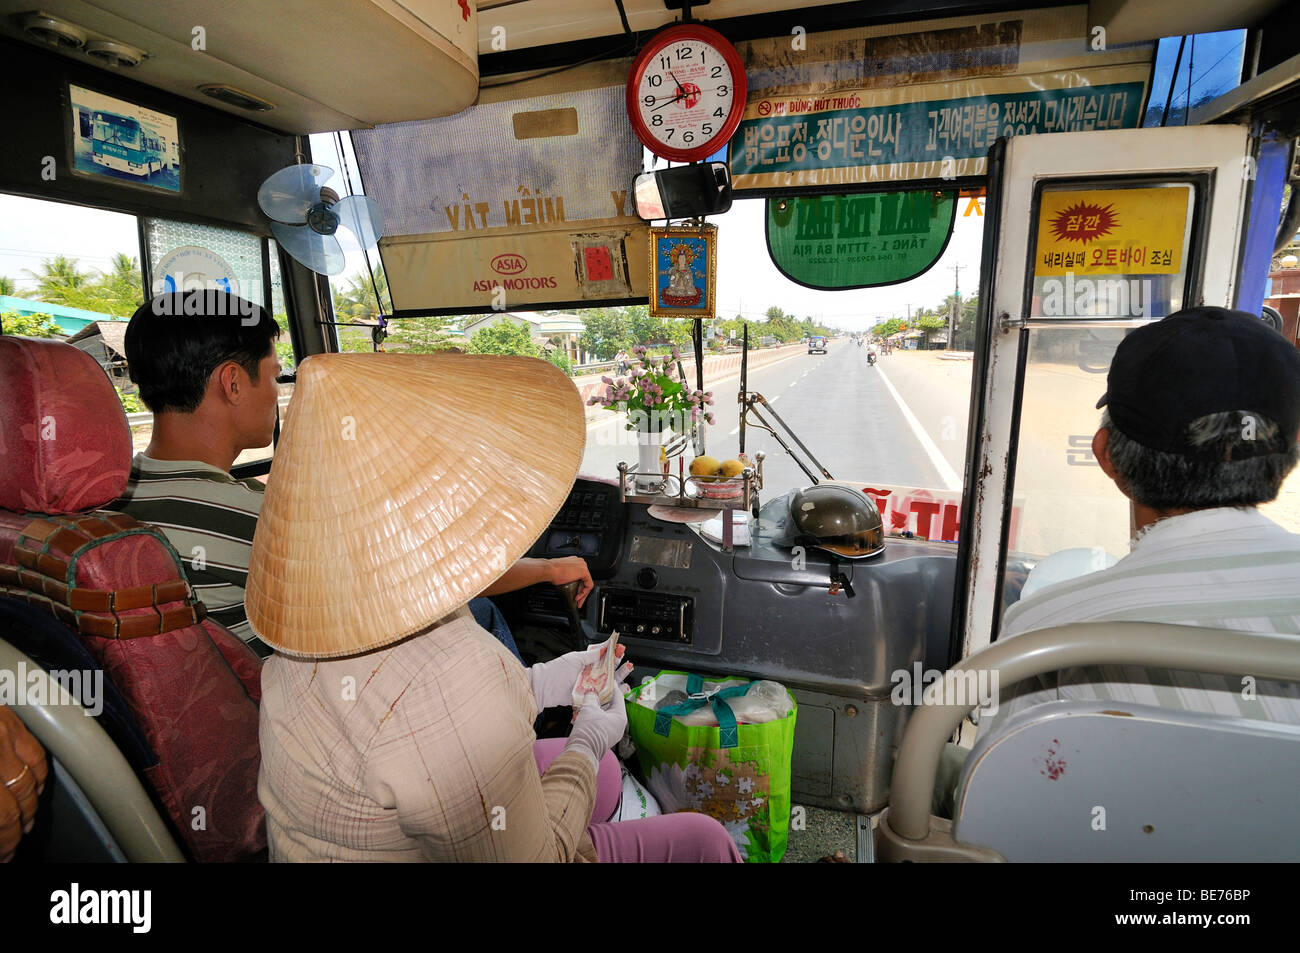 Driver, passenger and cashier looking from a minibus onto the road, Mekong Delta, Vietnam, Southeast Asia - Stock Image